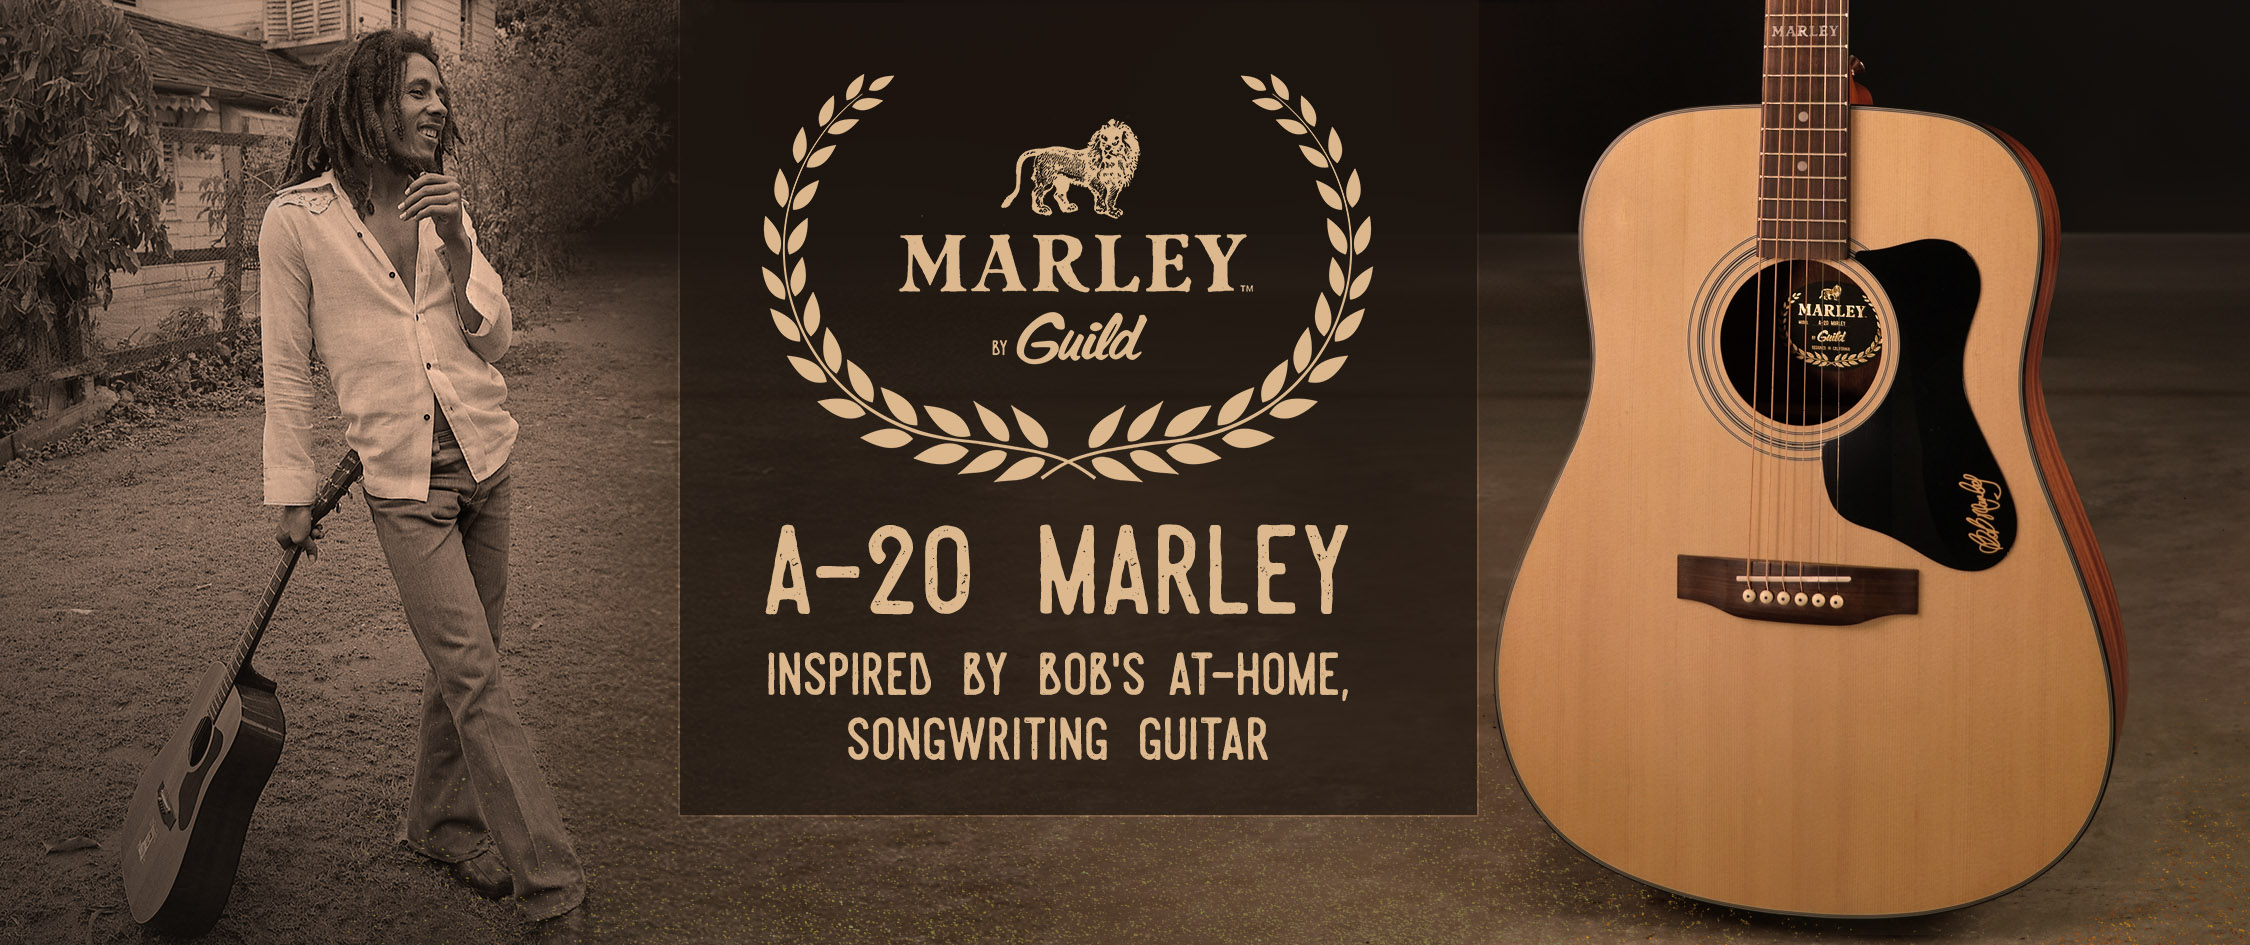 A-20 Marley Acoustic Guitar